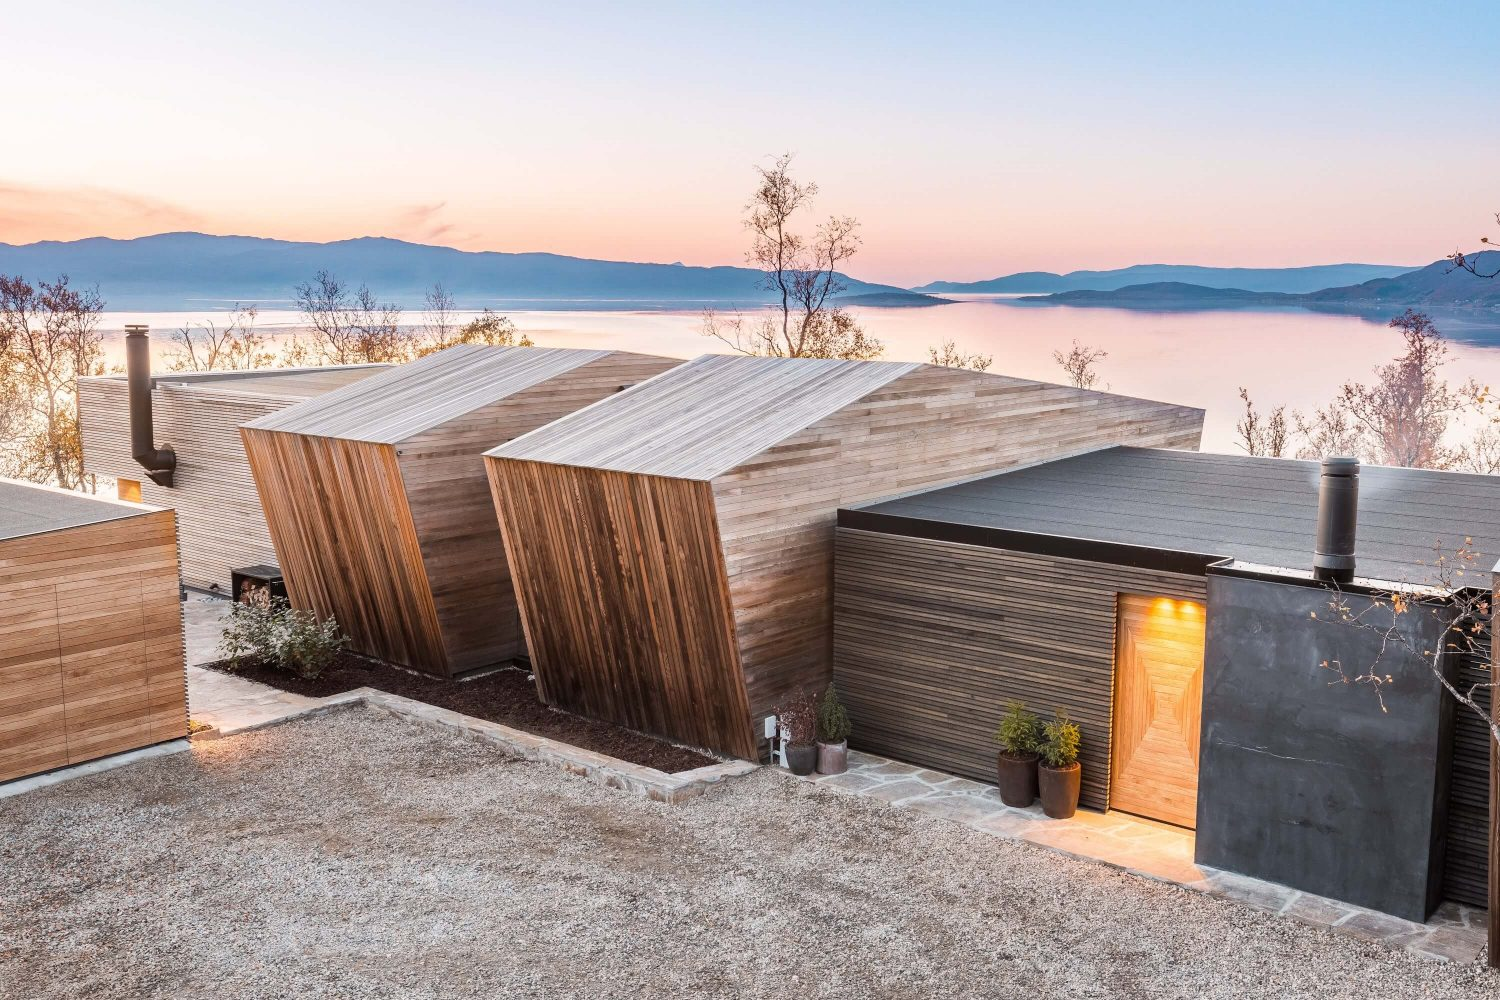 Malangen Retreat by Stinessen Arkitektur